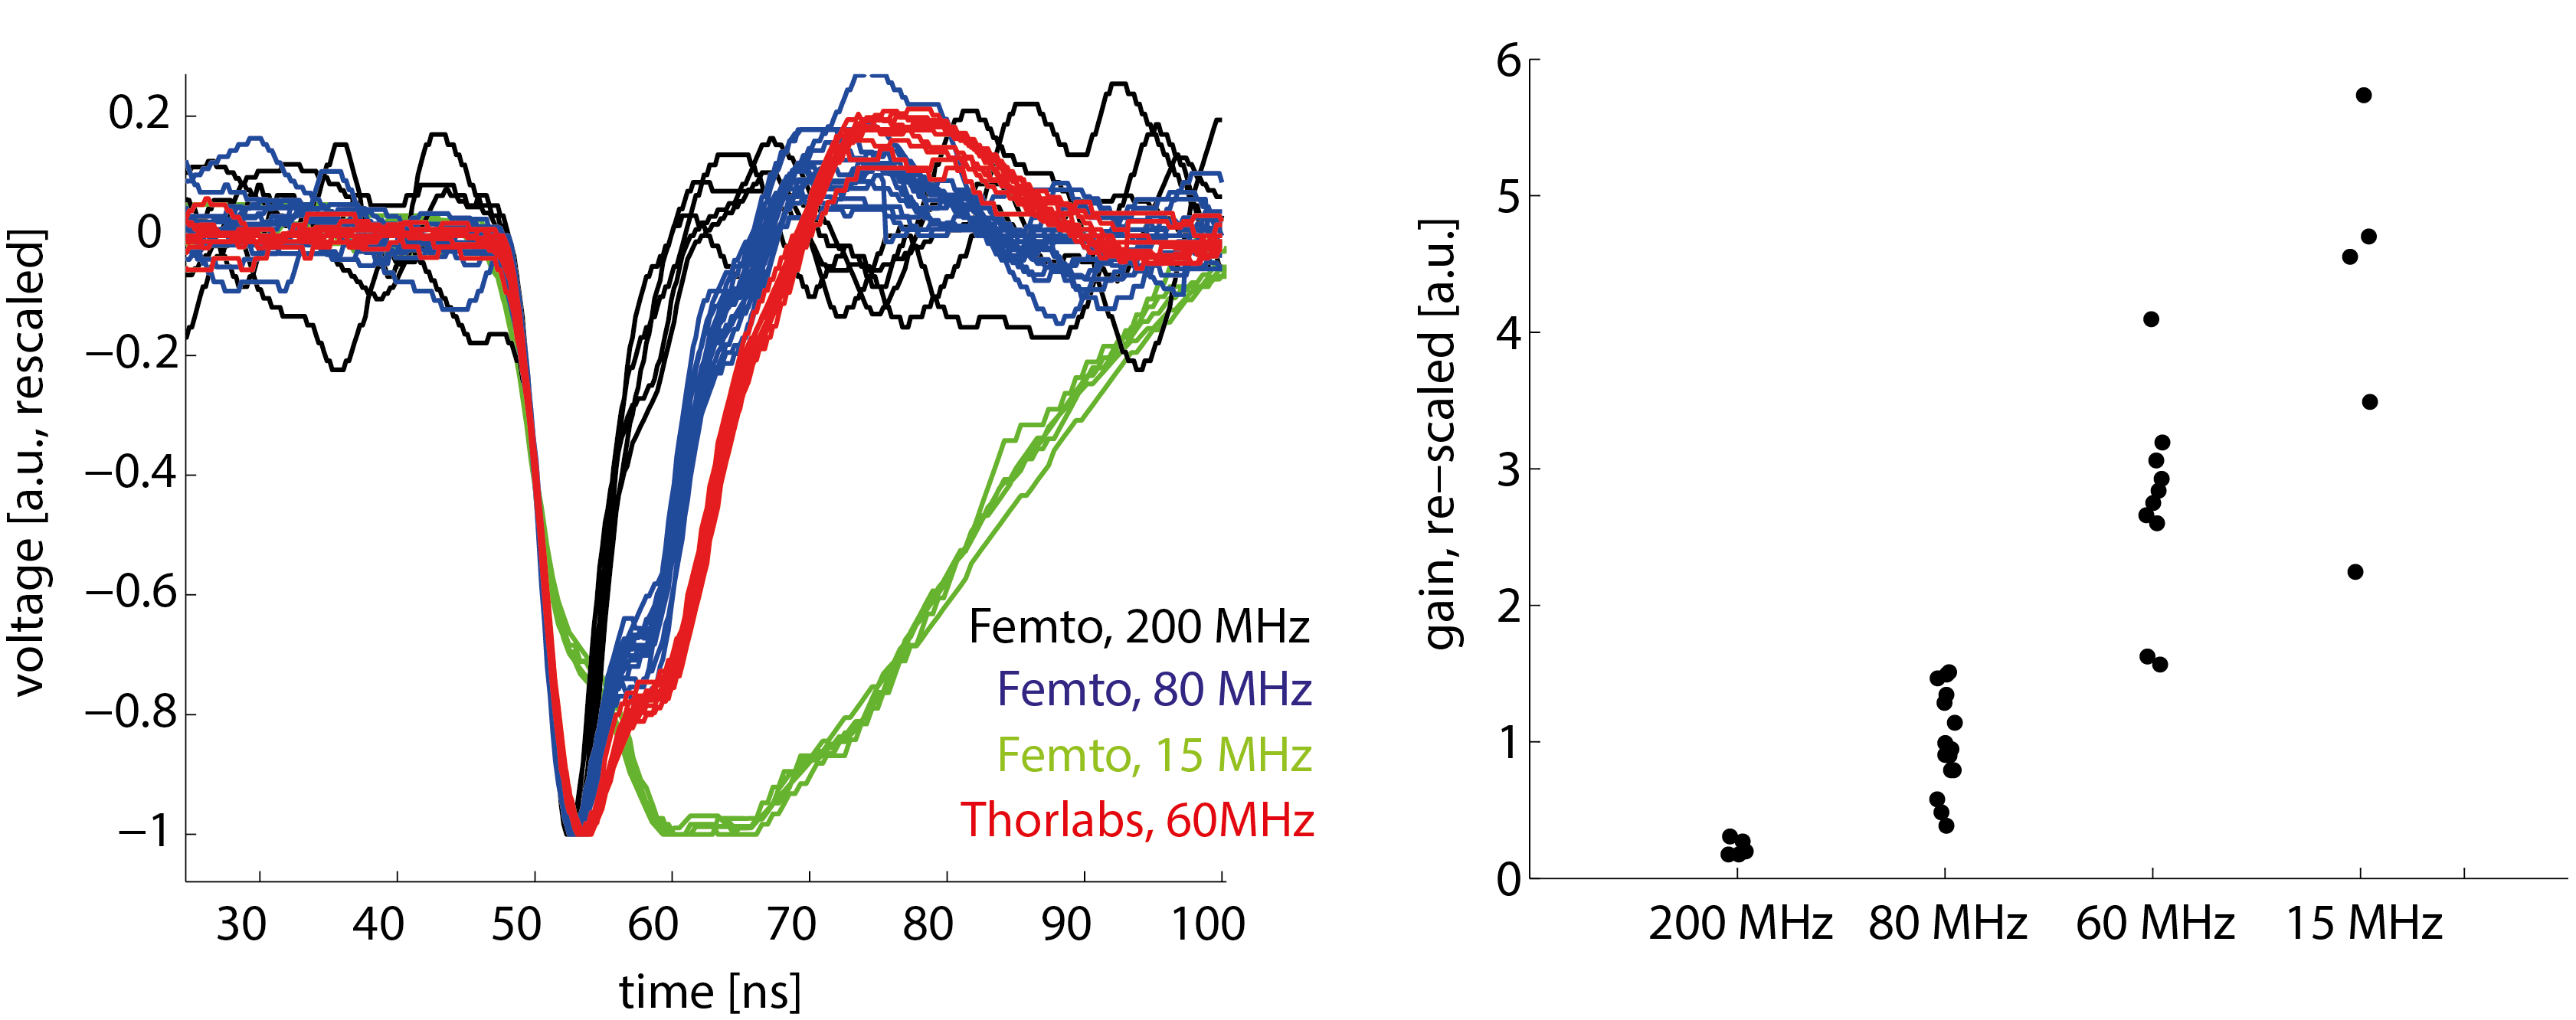 Preamplifier bandwidth & two ways of counting photons | A blog about